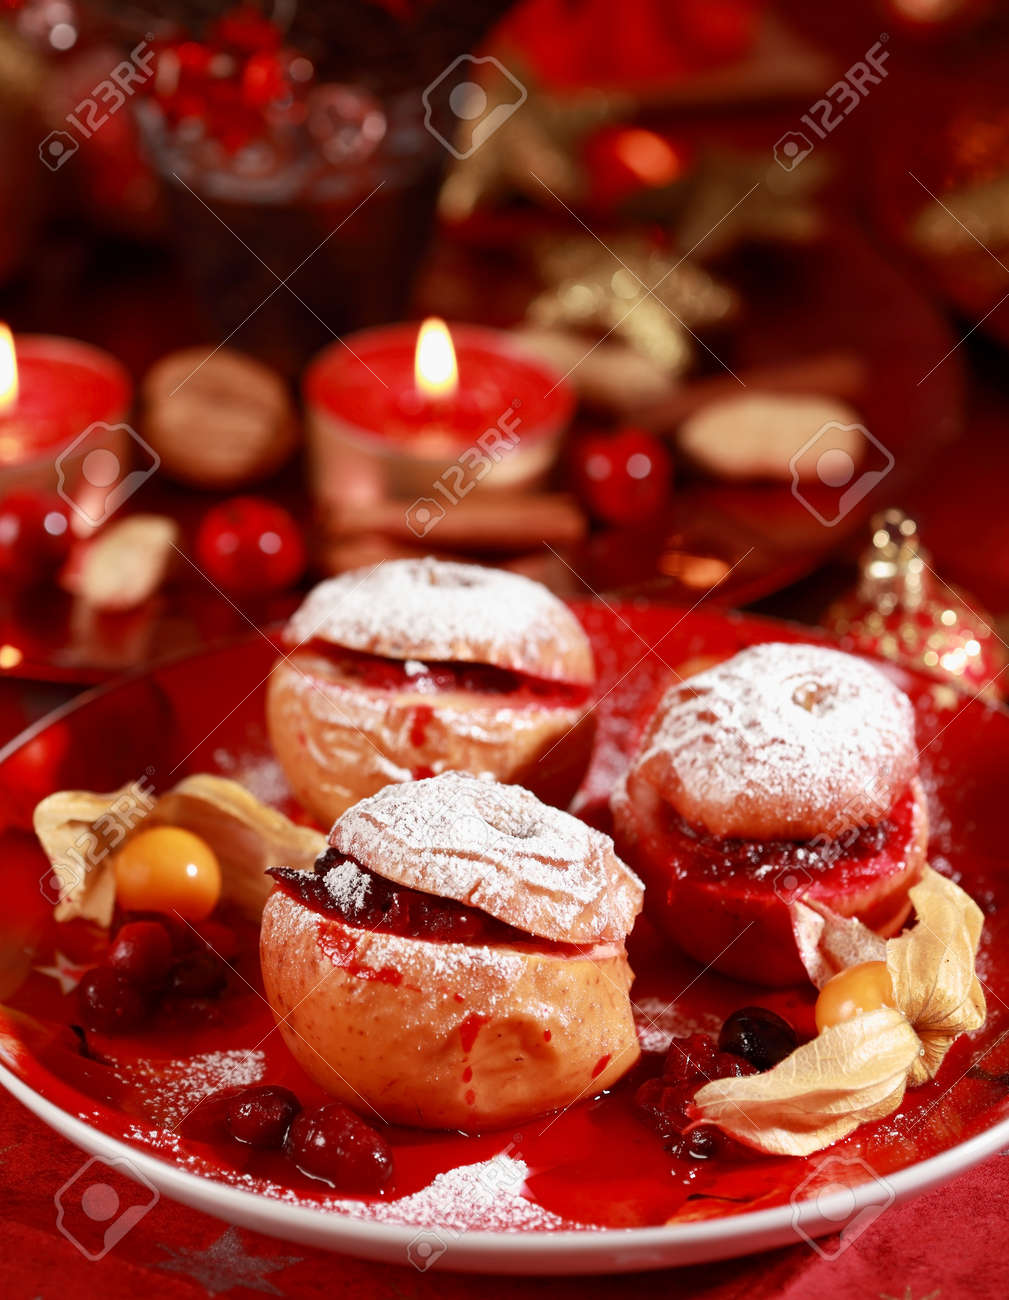 Delicious baked apple with cranberry stuffing for Christmas Stock Photo - 9864948